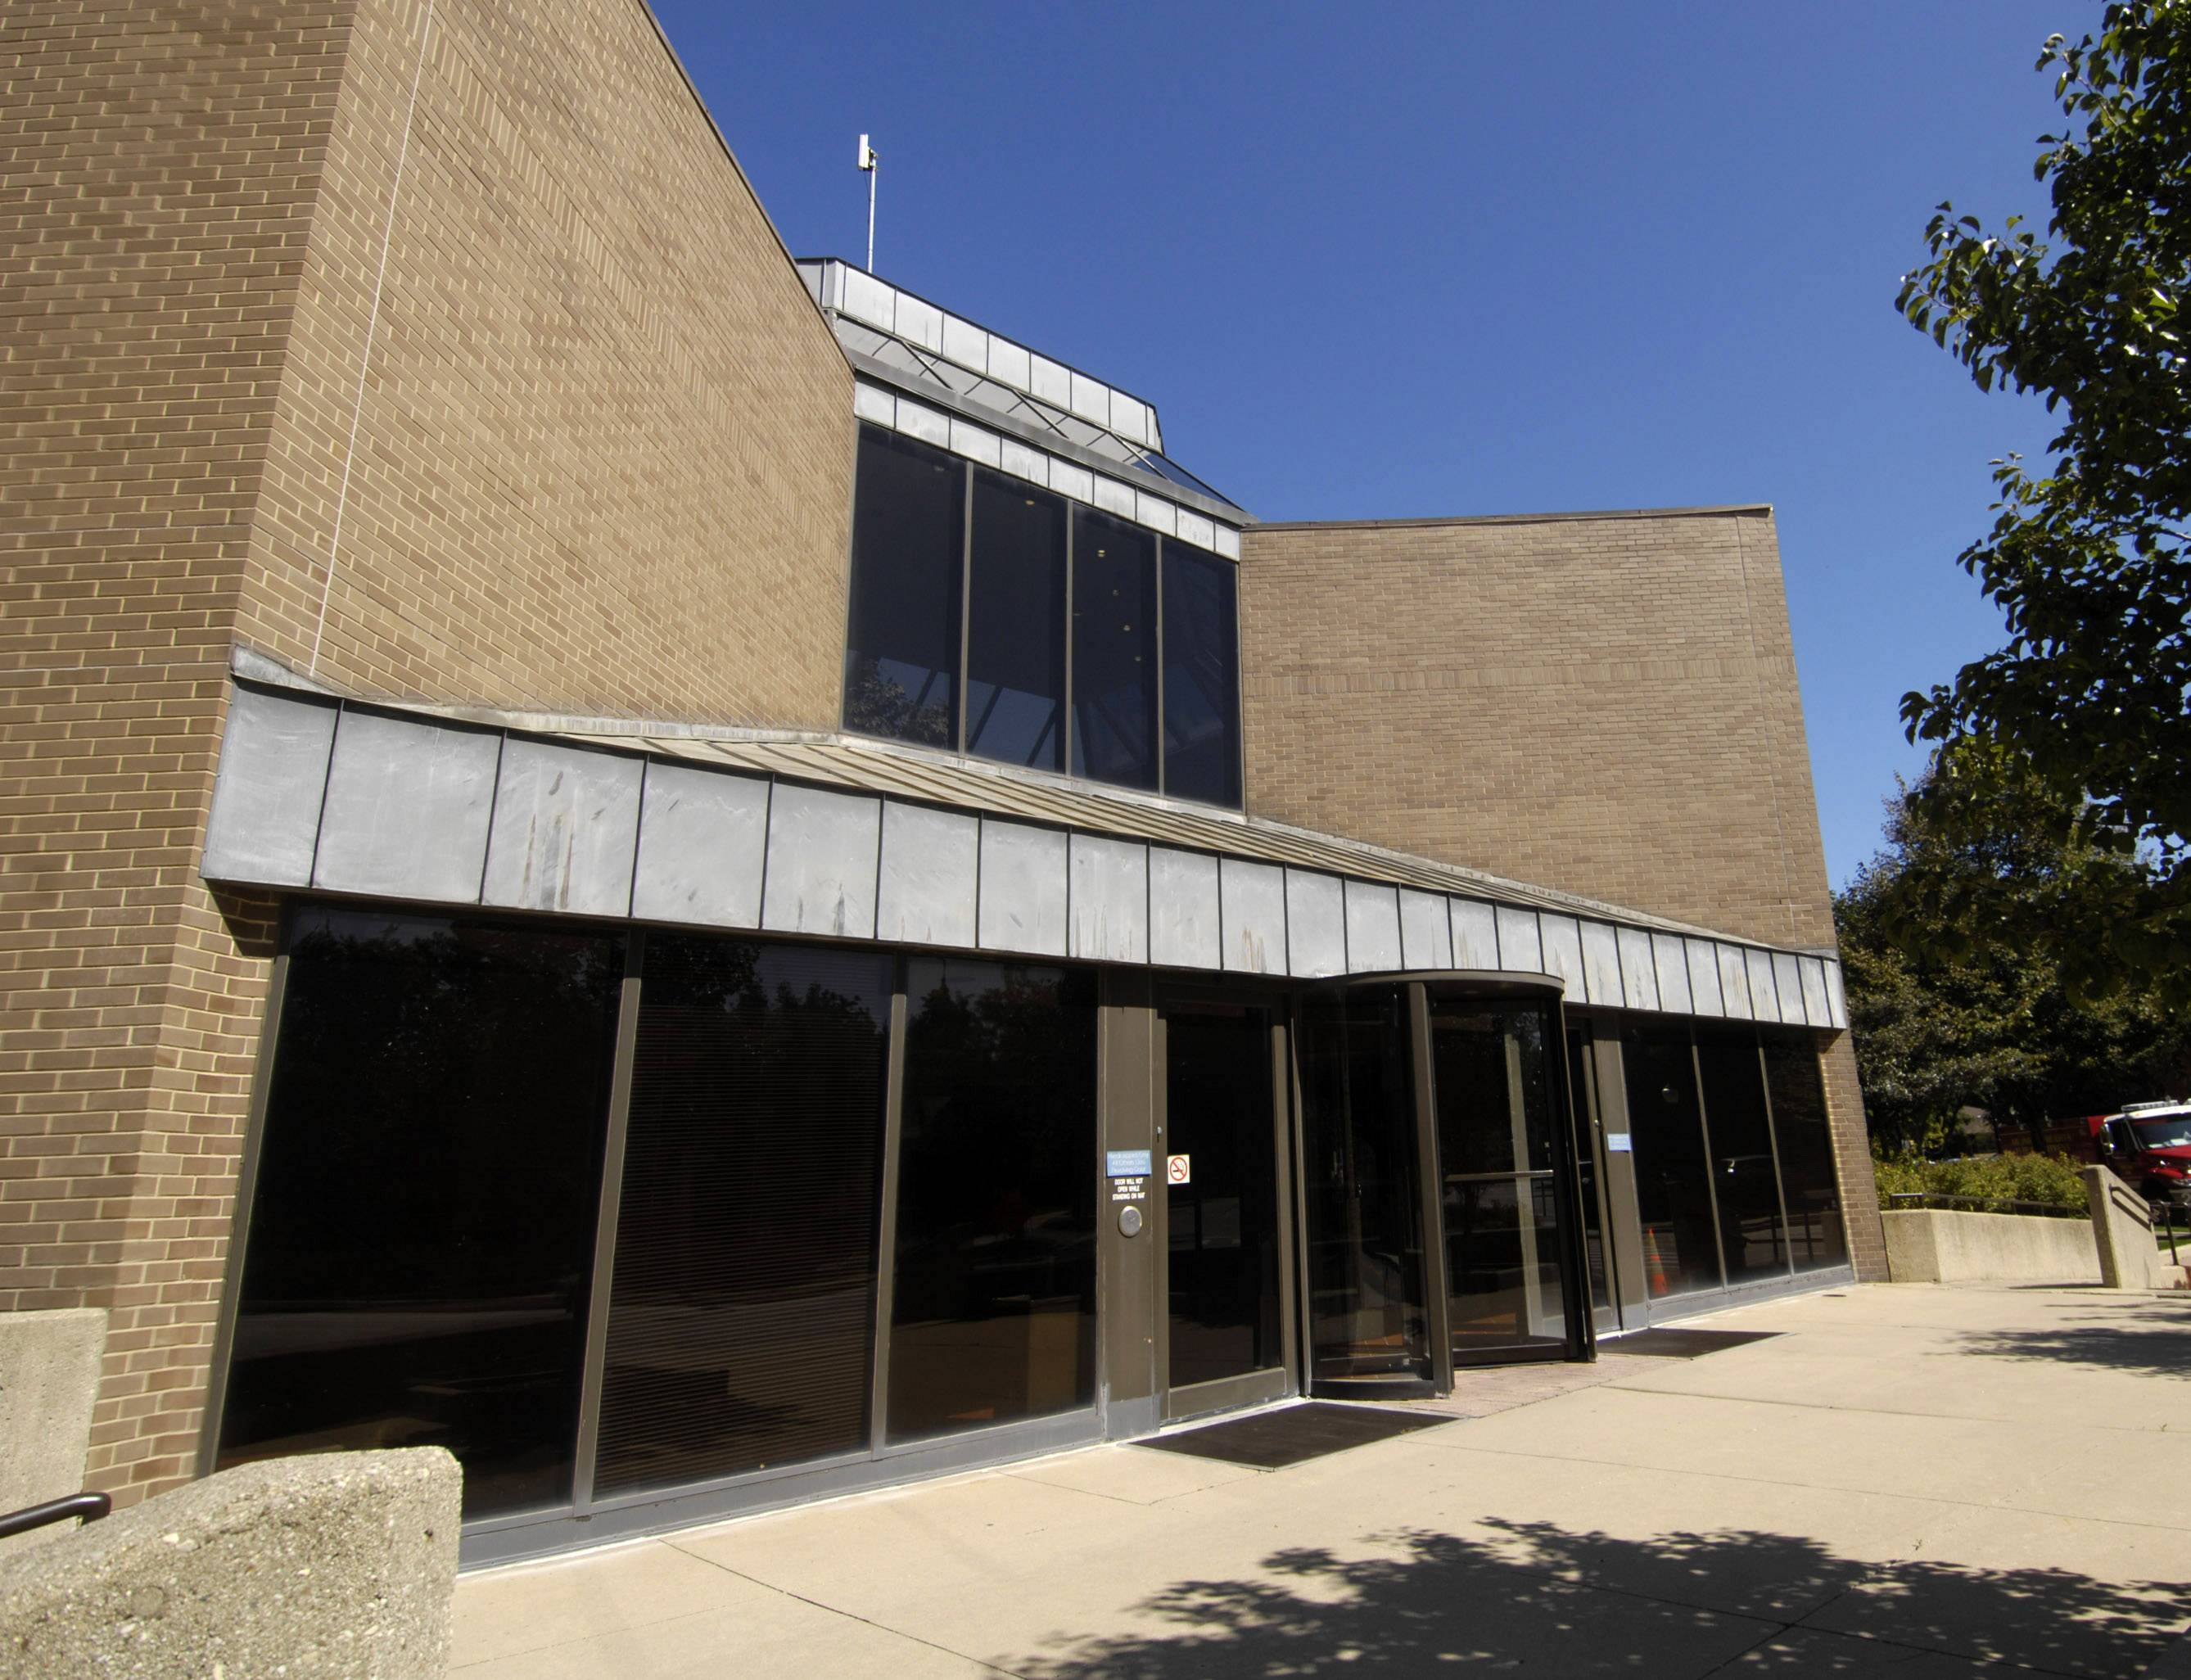 Arlington Heights again is buying a study on whether a new police station can be built to replace the outdated one at 200 E Sigwalt Ave.